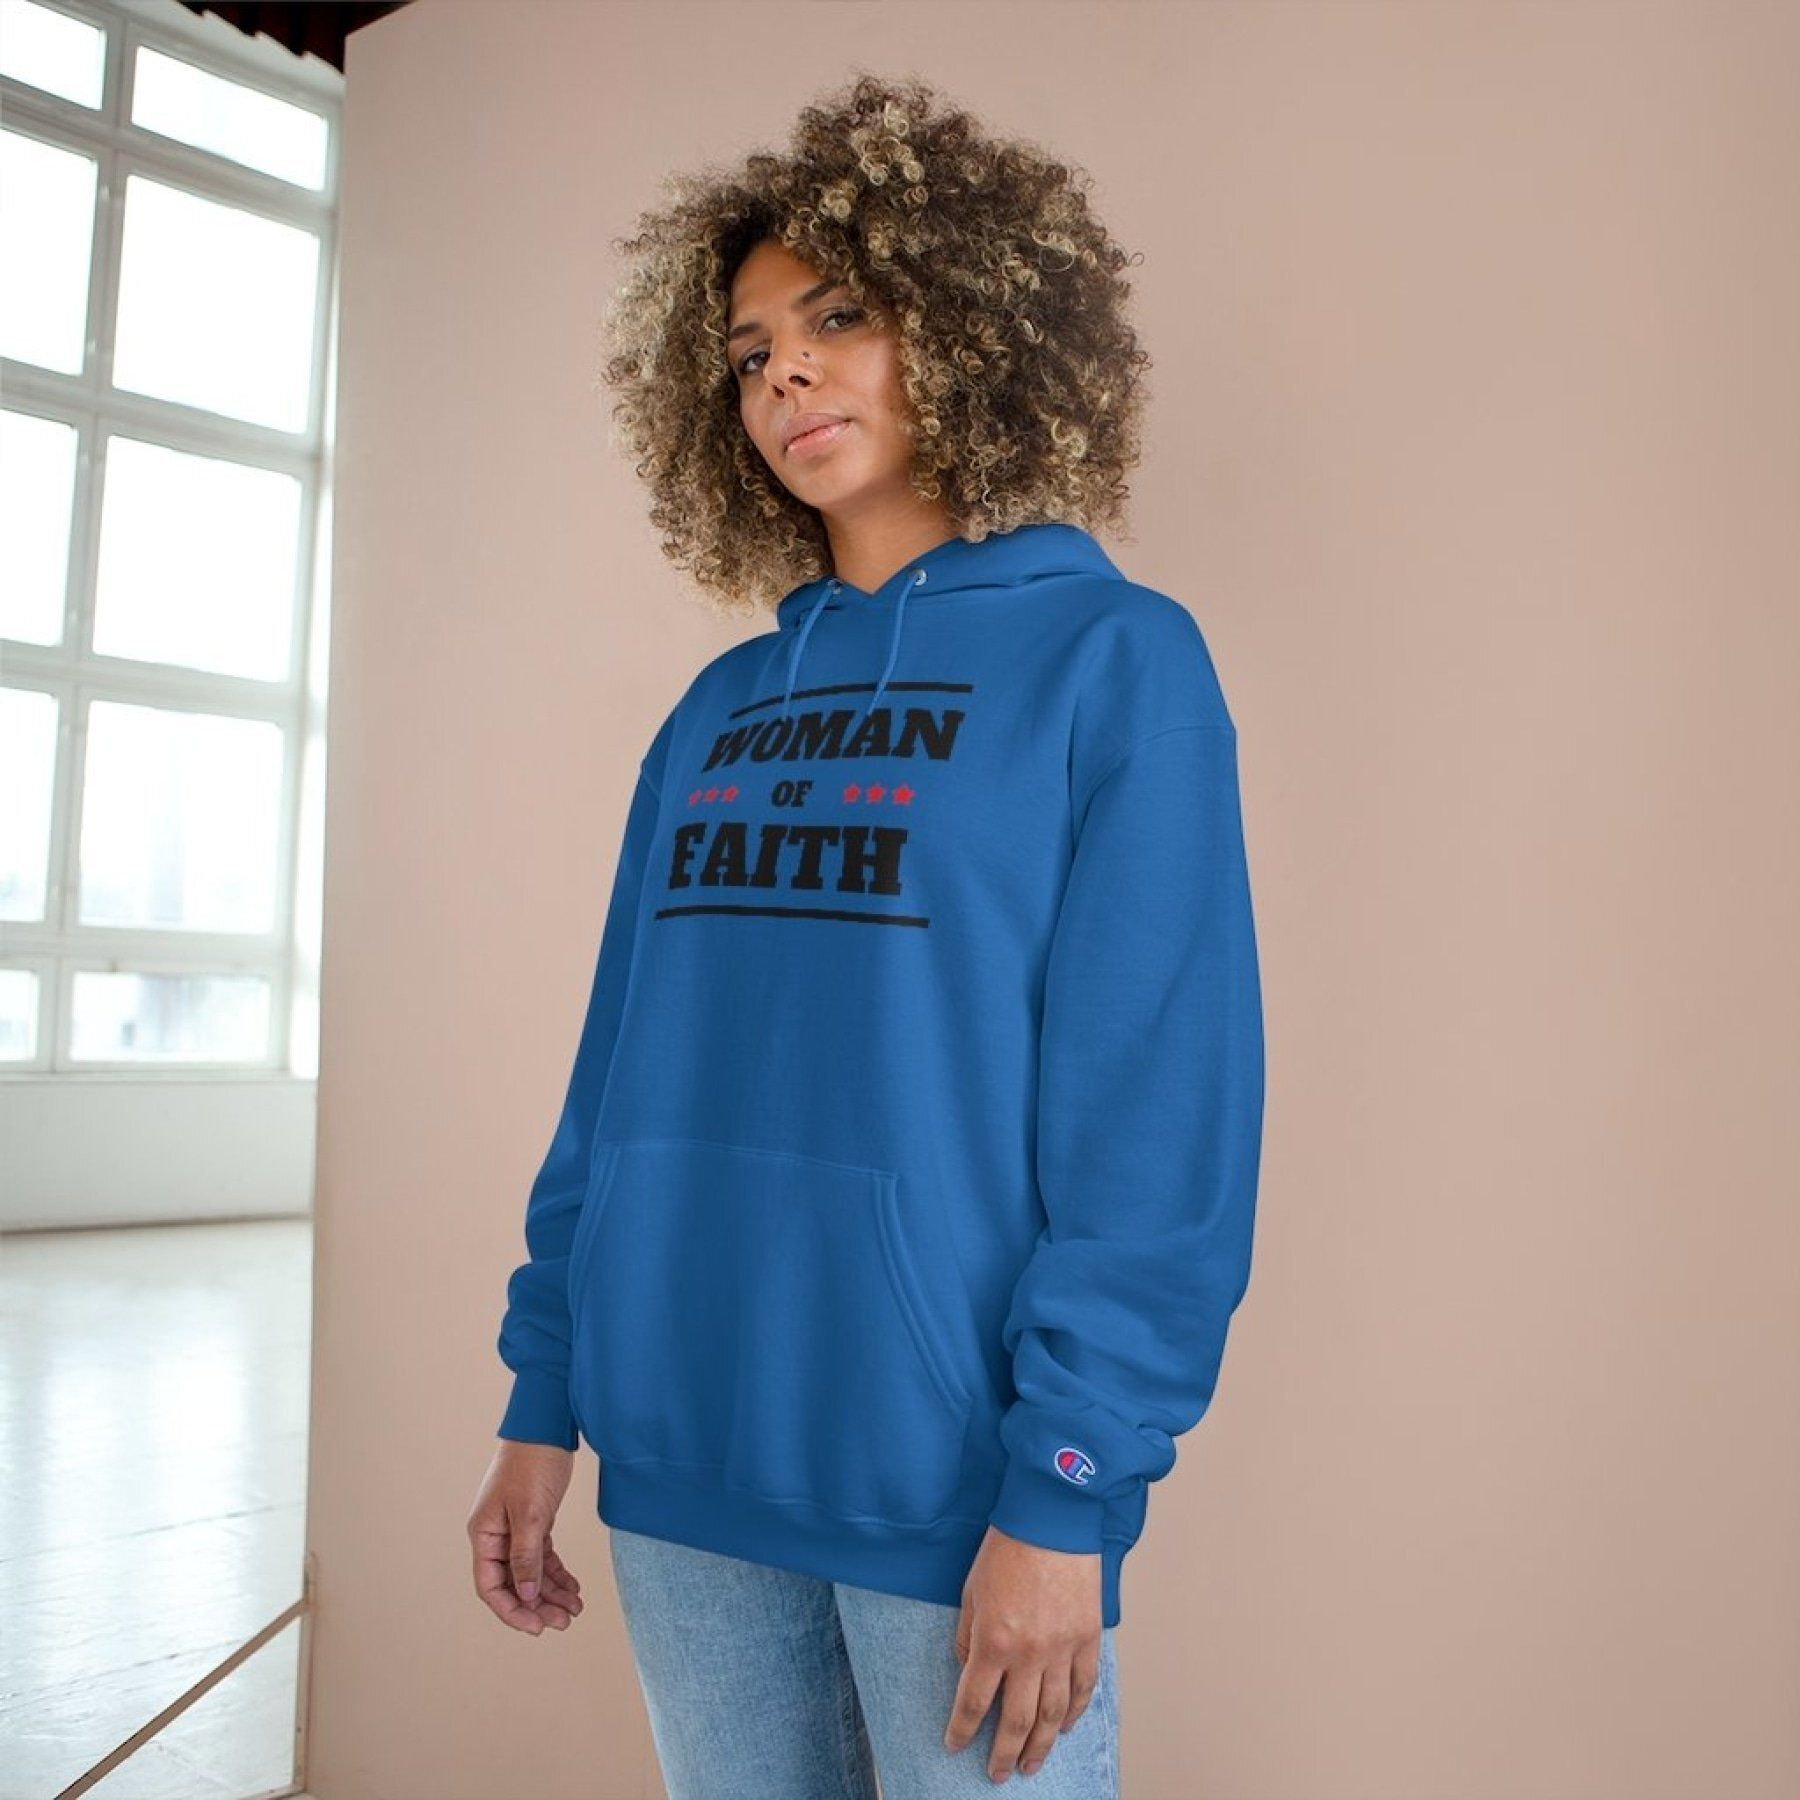 Womens Hoodies, Woman of Faith Graphic Style Hooded Shirt